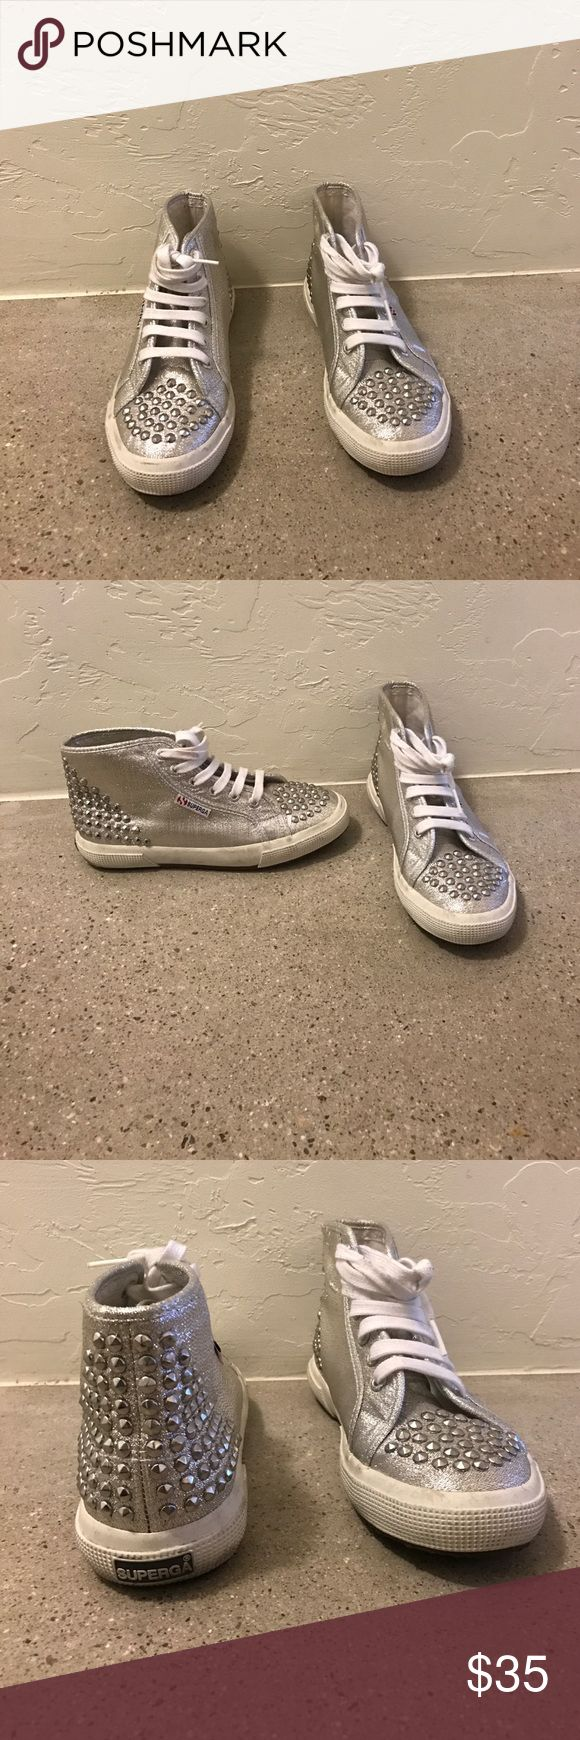 Superga Silver Studded Sneakers Silver with front and back studs. Size 6. *** All items will be removed by Thursday 5/18/17 and donated. Make me an offer! Superga Shoes Sneakers